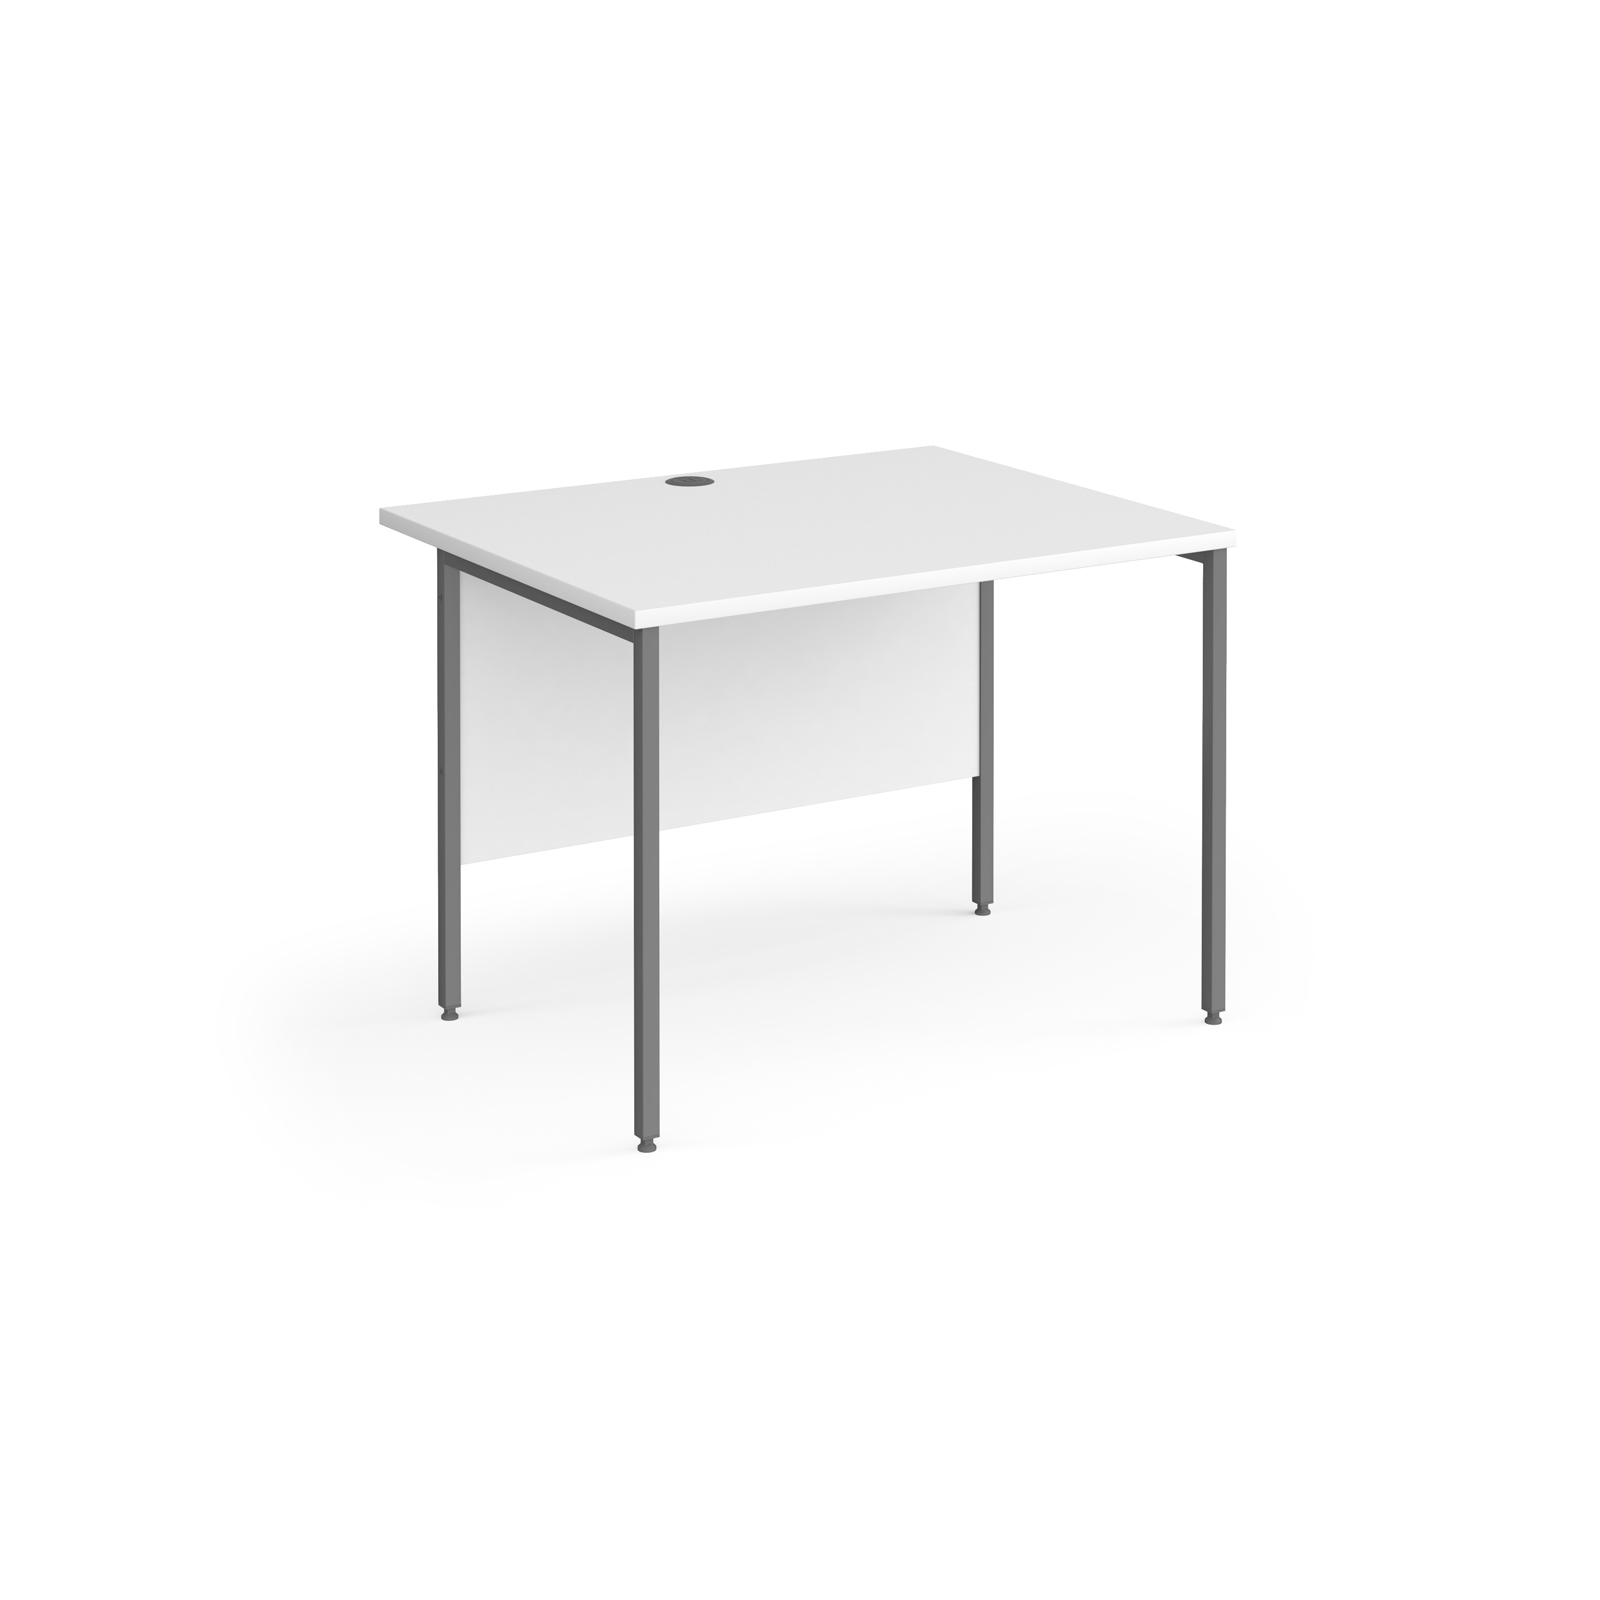 Contract 25 straight desk with graphite H-Frame leg 1000mm x 800mm - white top